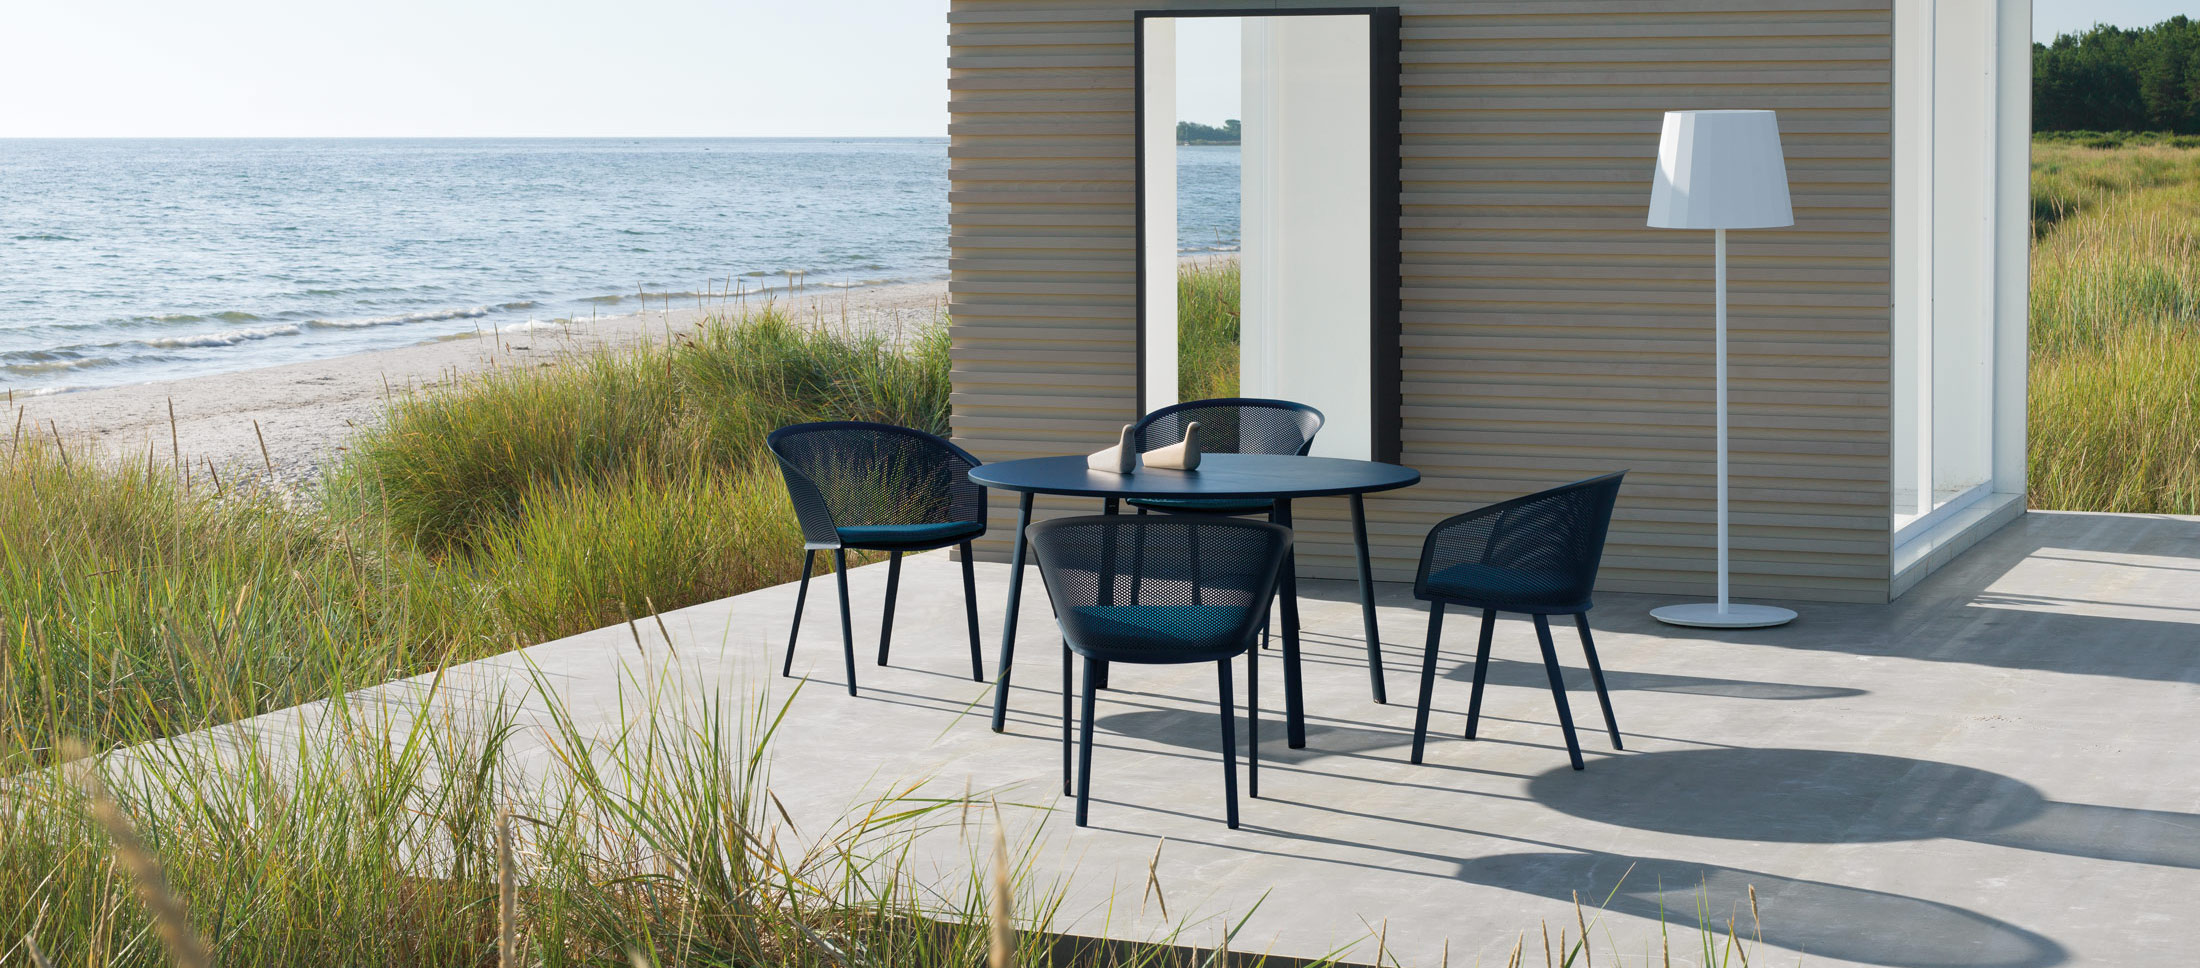 Muebles kettal the why factory for Conjunto terraza